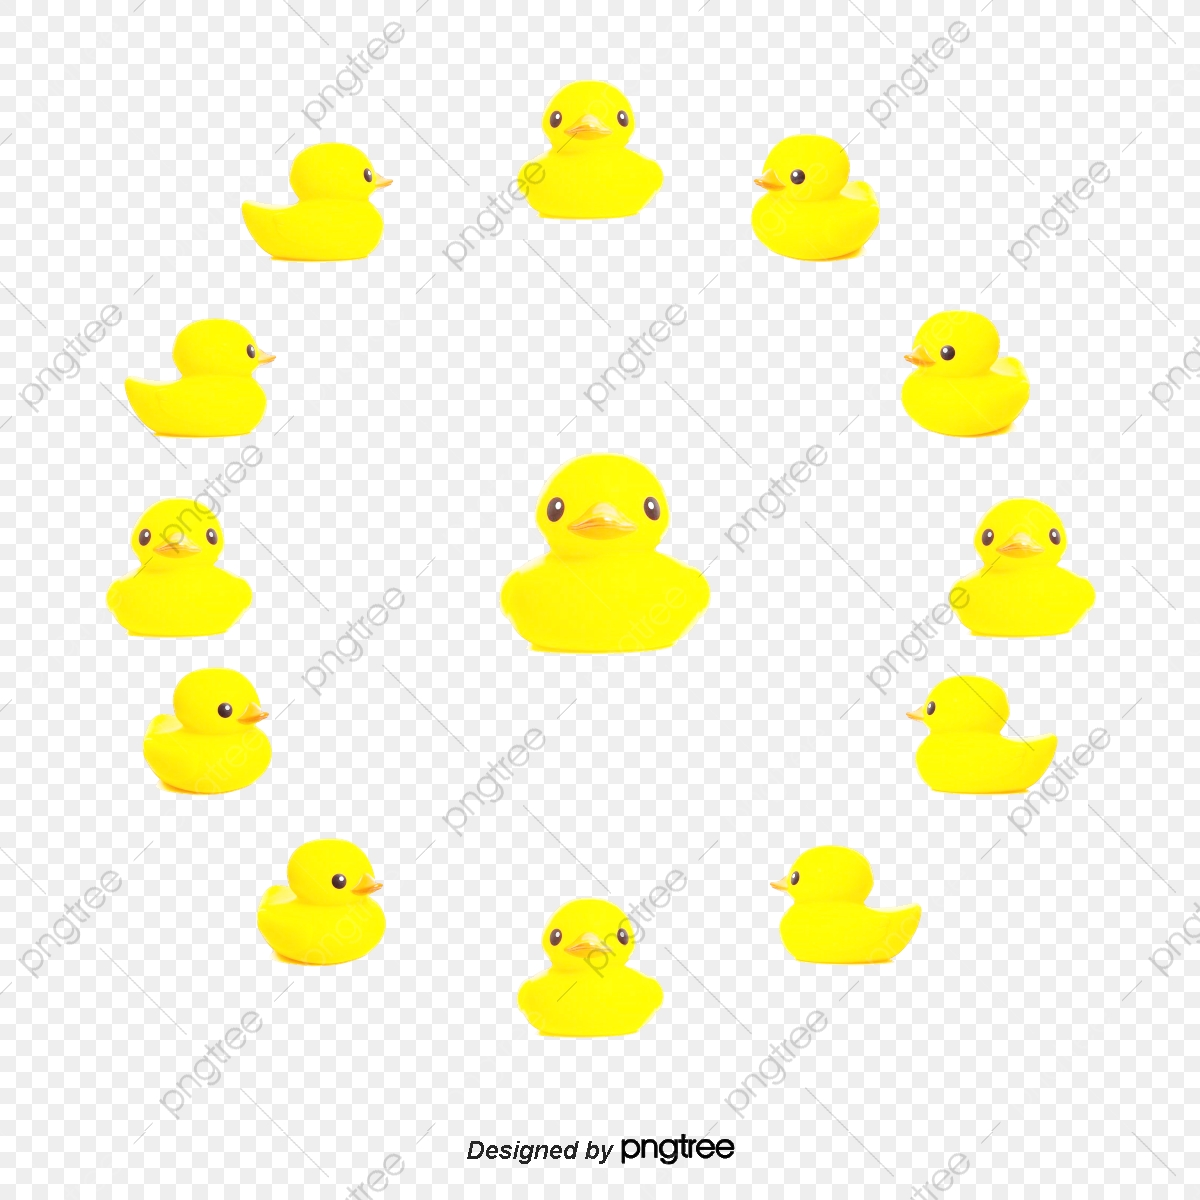 Toy yellow cartoon little. Duckling clipart small duck